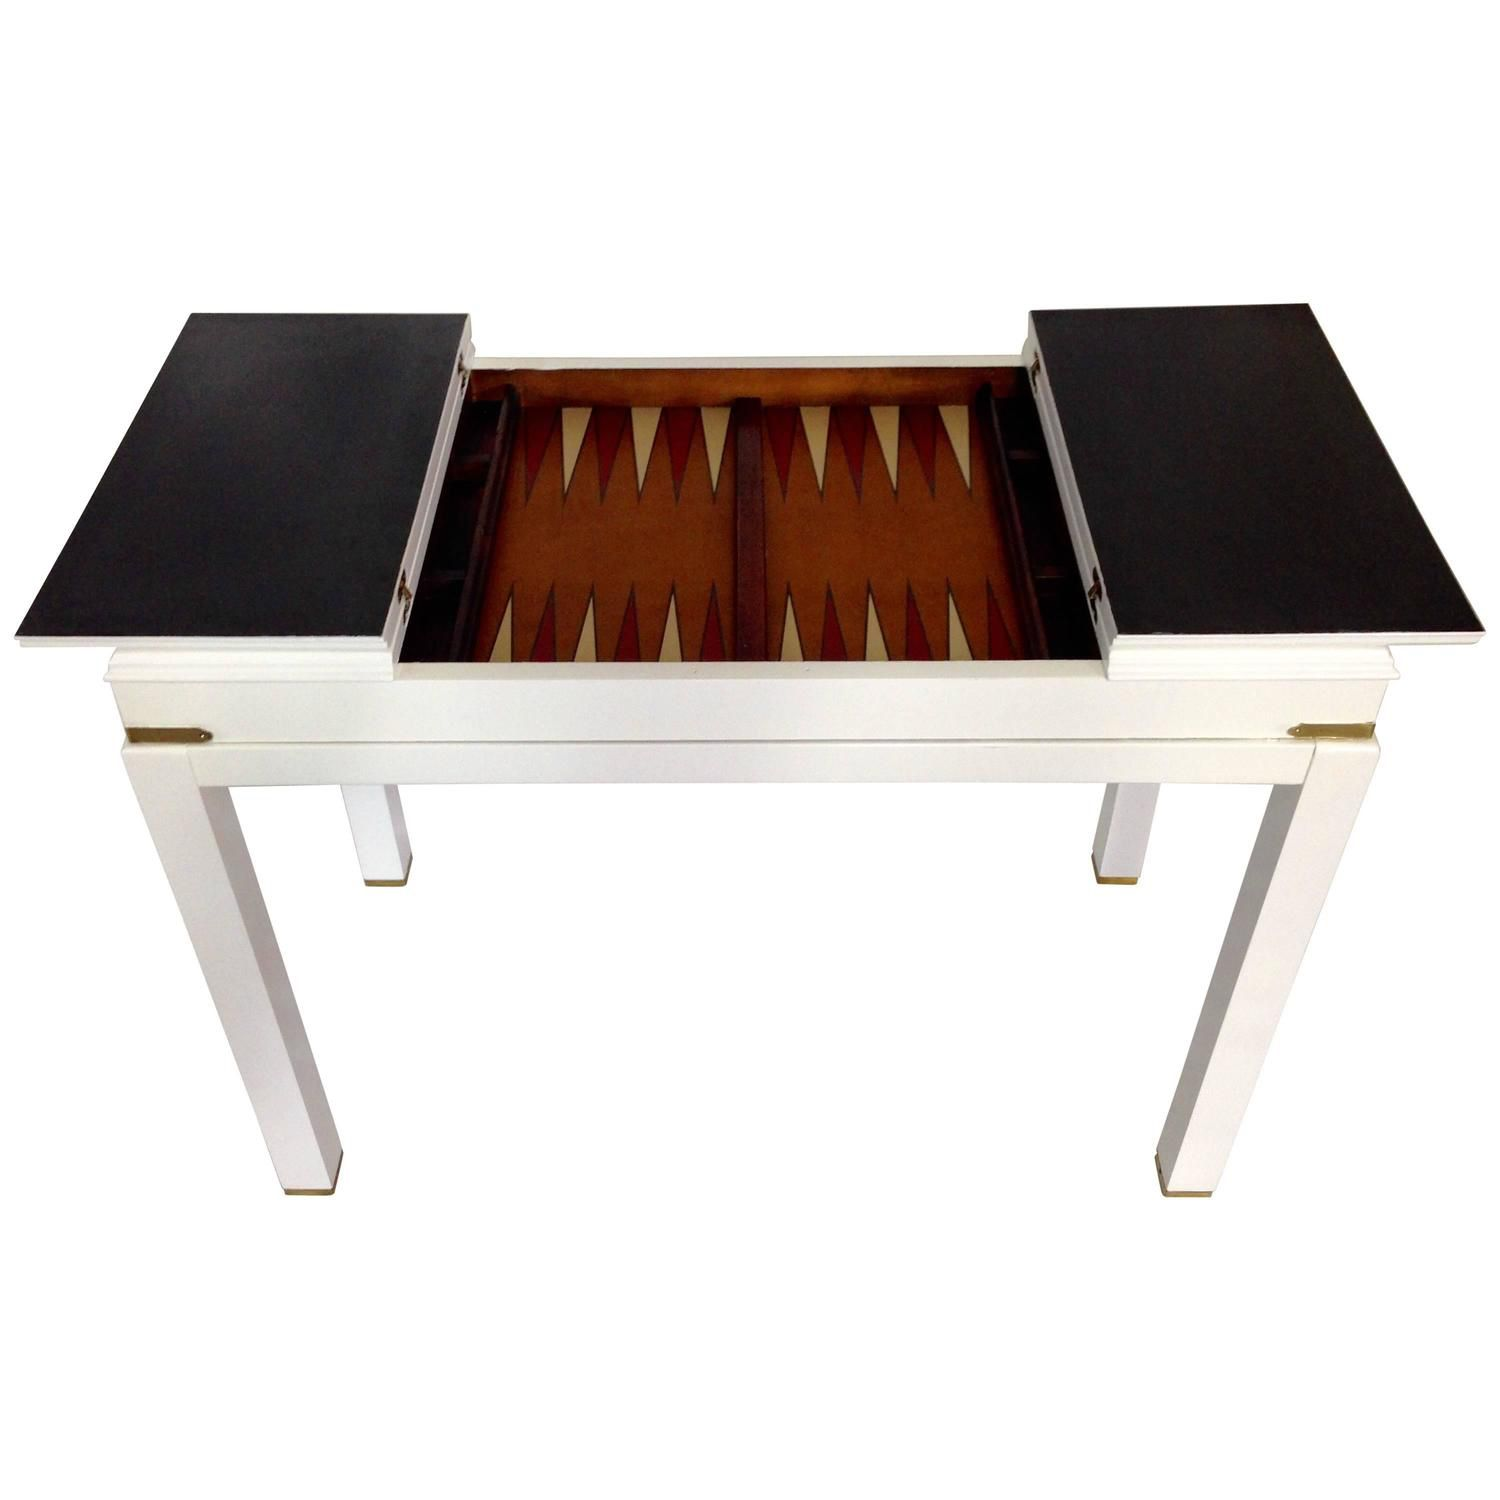 1960s White Lacquered Backgammon Game Table By Lane | See More Antique And  Modern Game Tables